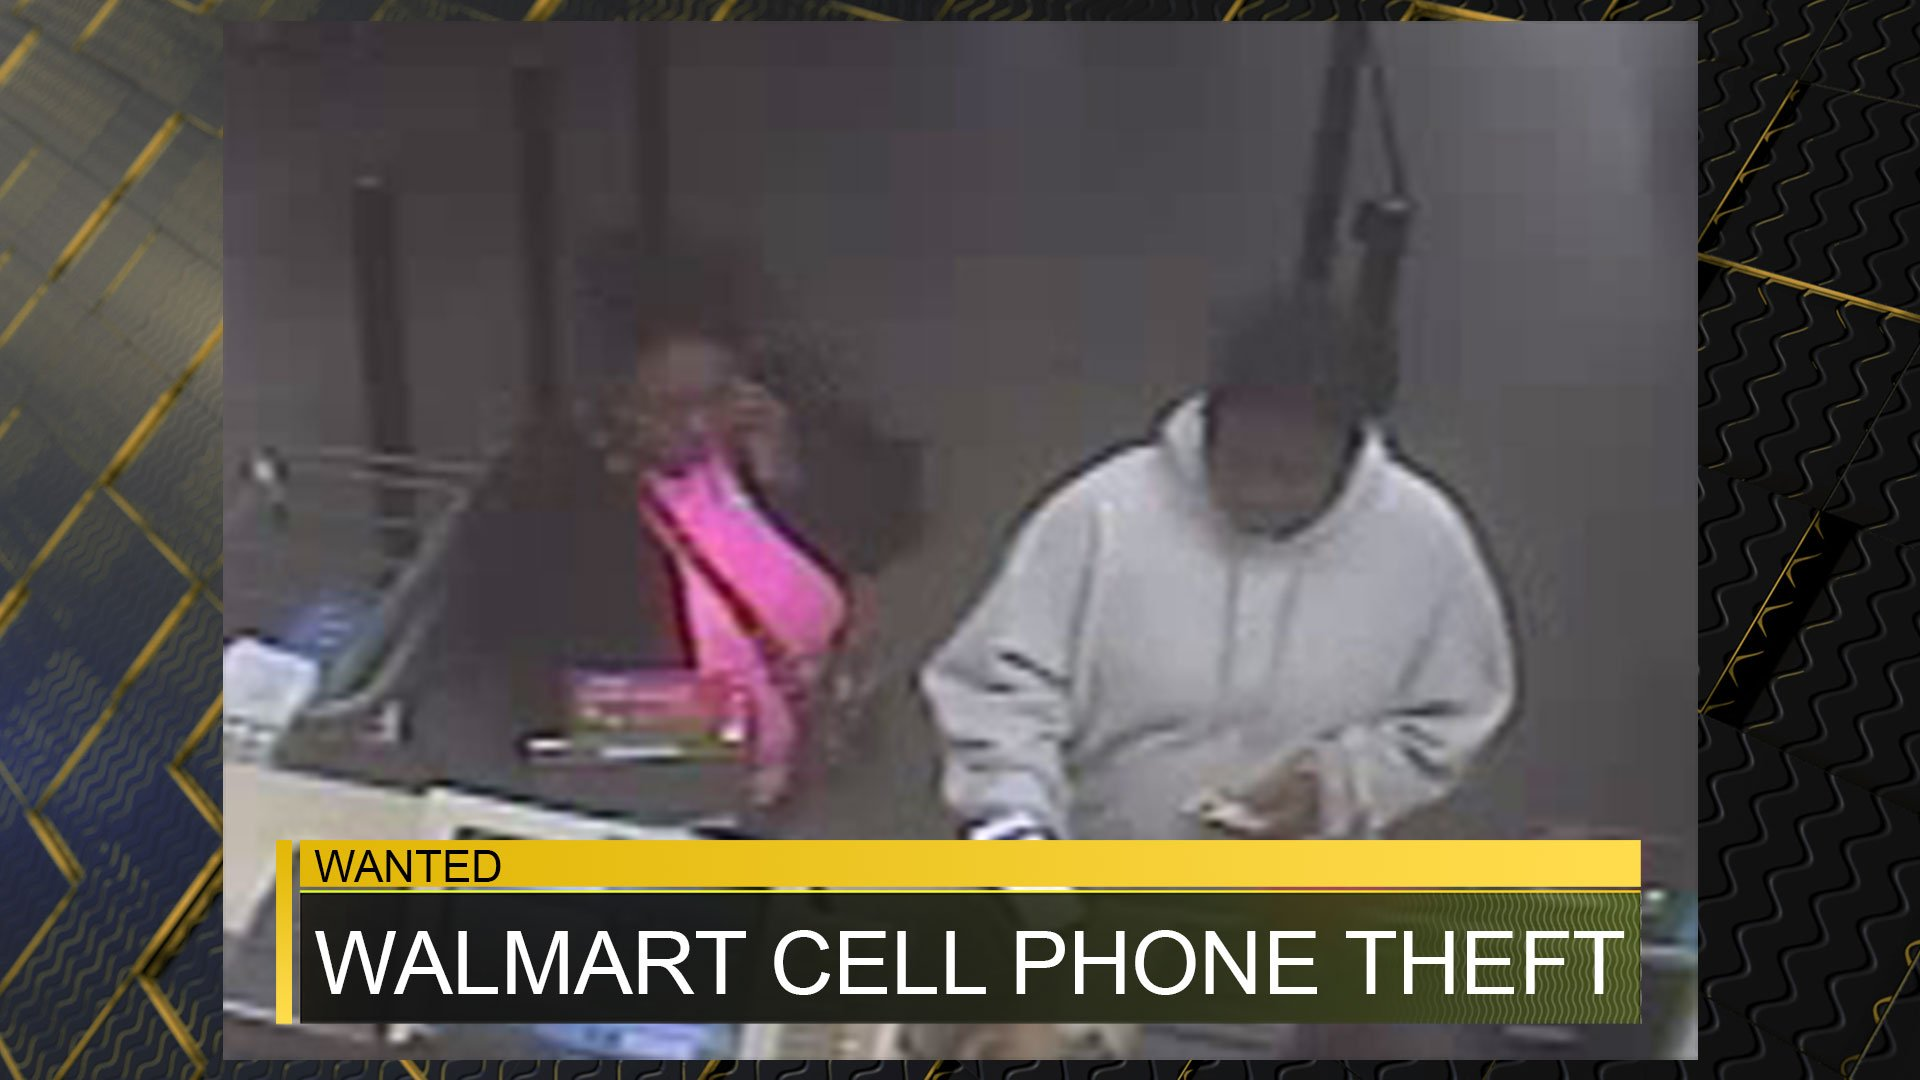 What Should I do if my Cell Phone is Stolen?